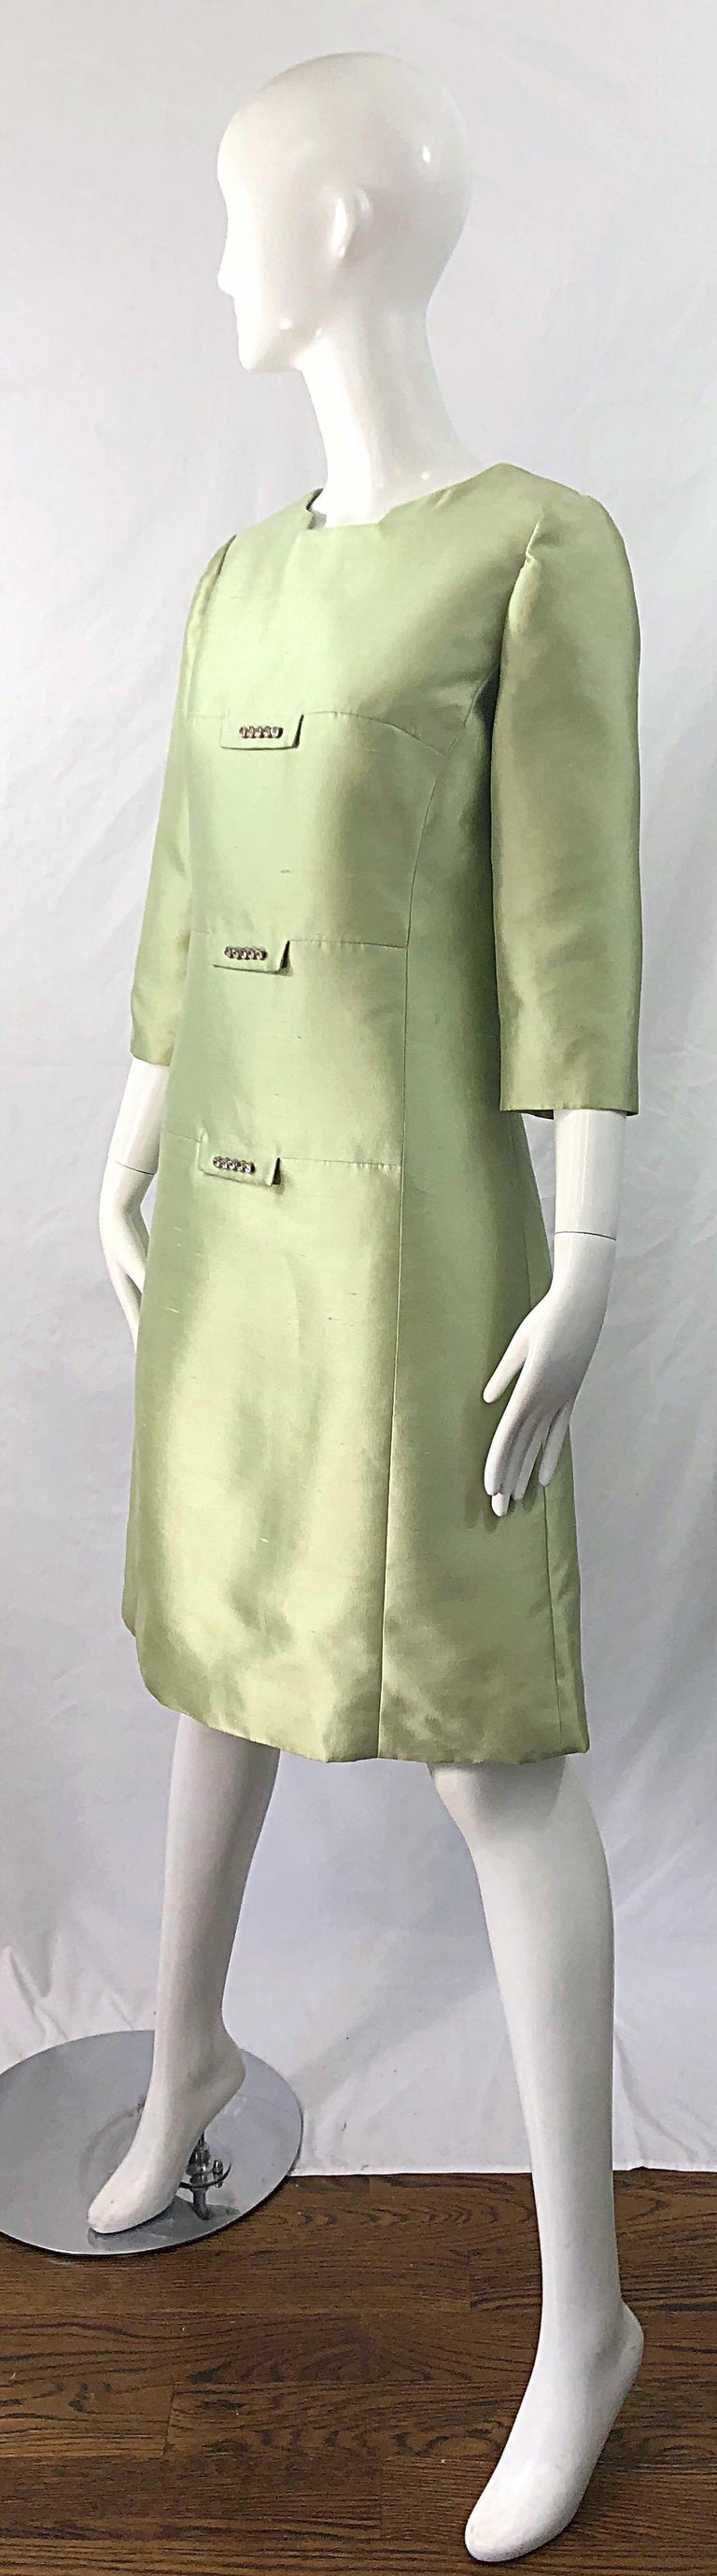 Chic 1960s Mint Green Silk Shantung Rhinestone Vintage 60s A Line Dress In Excellent Condition For Sale In Chicago, IL